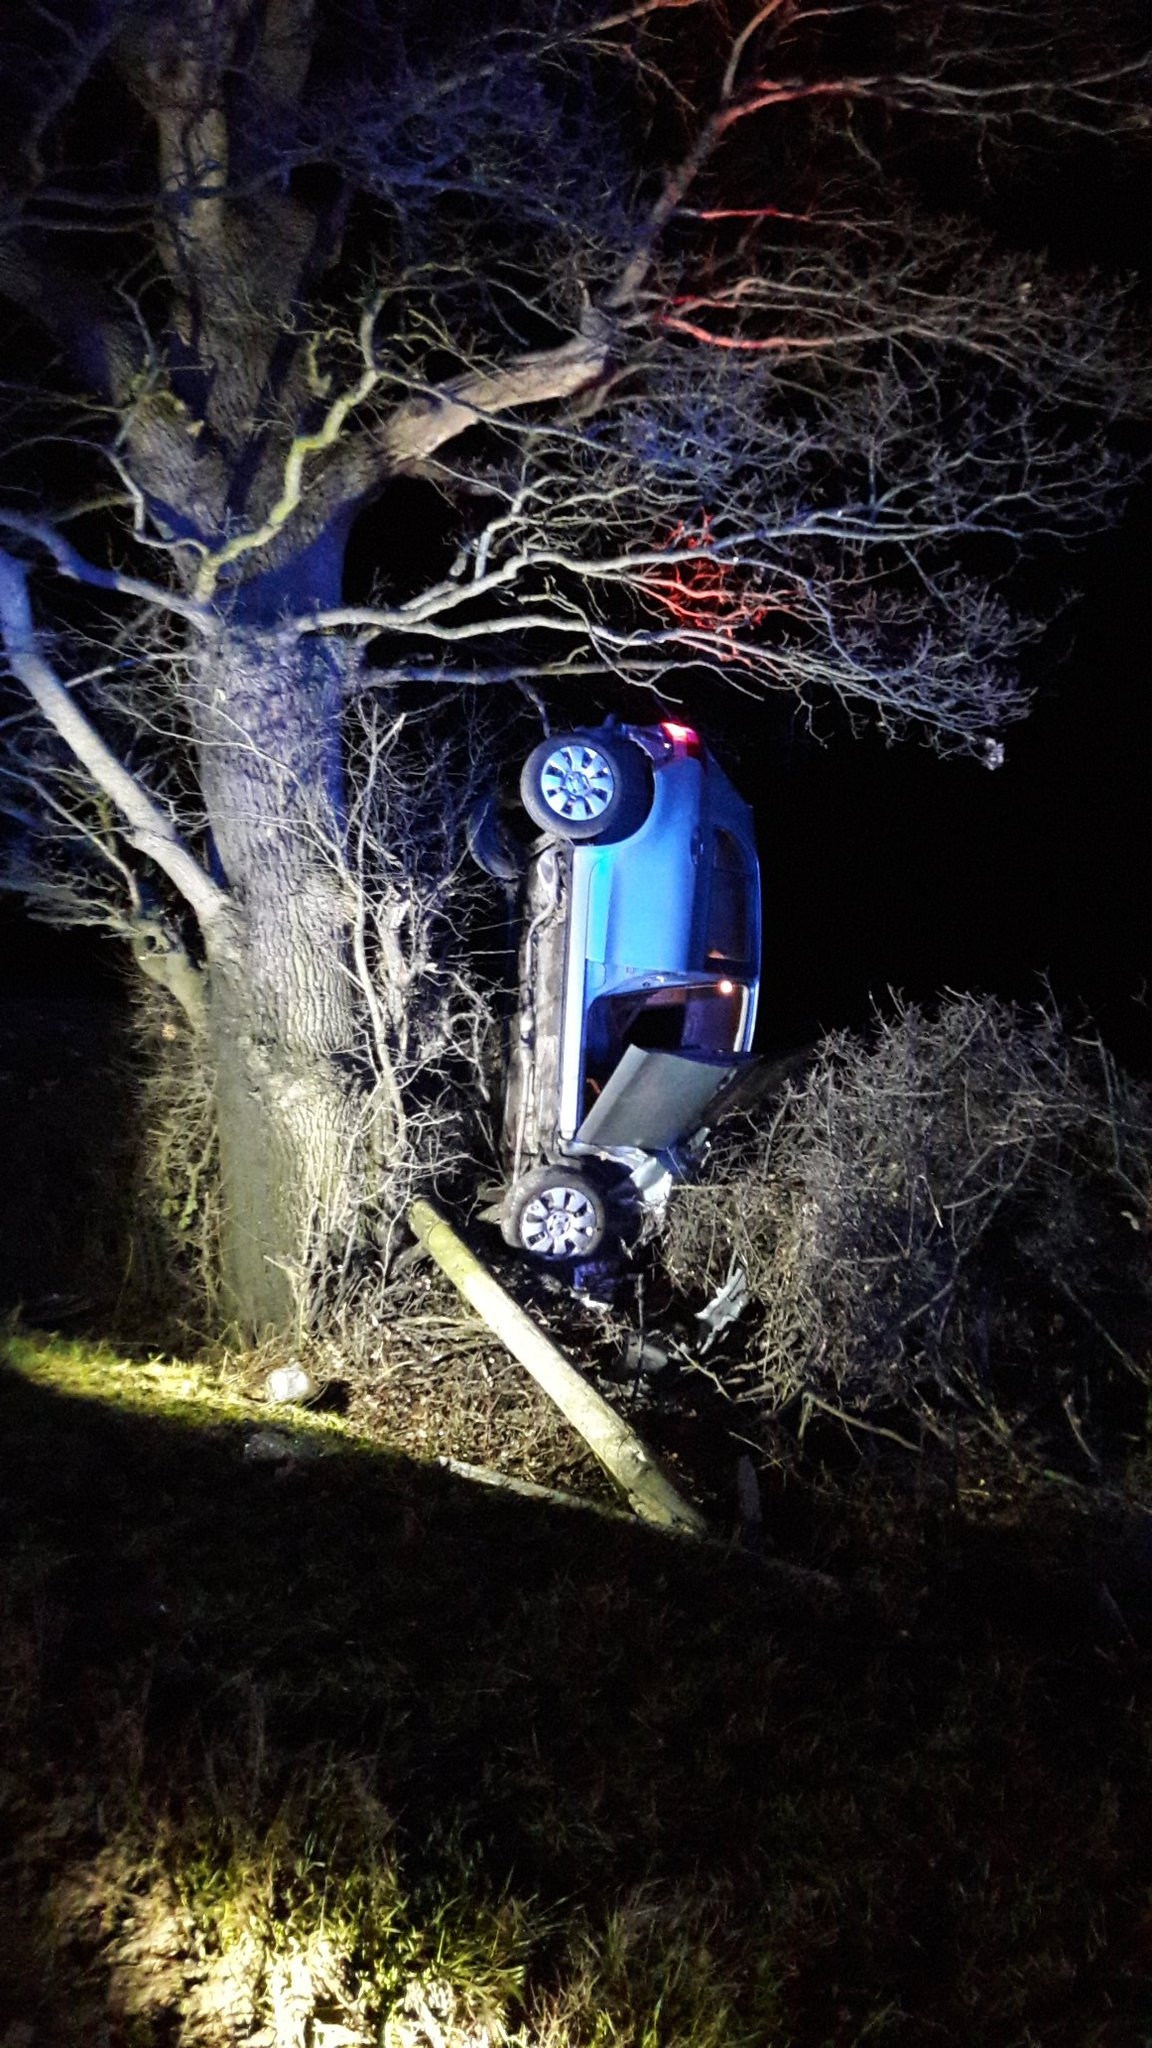 Car crashes into tree in Shropshire. Picture by @OPUShropshire